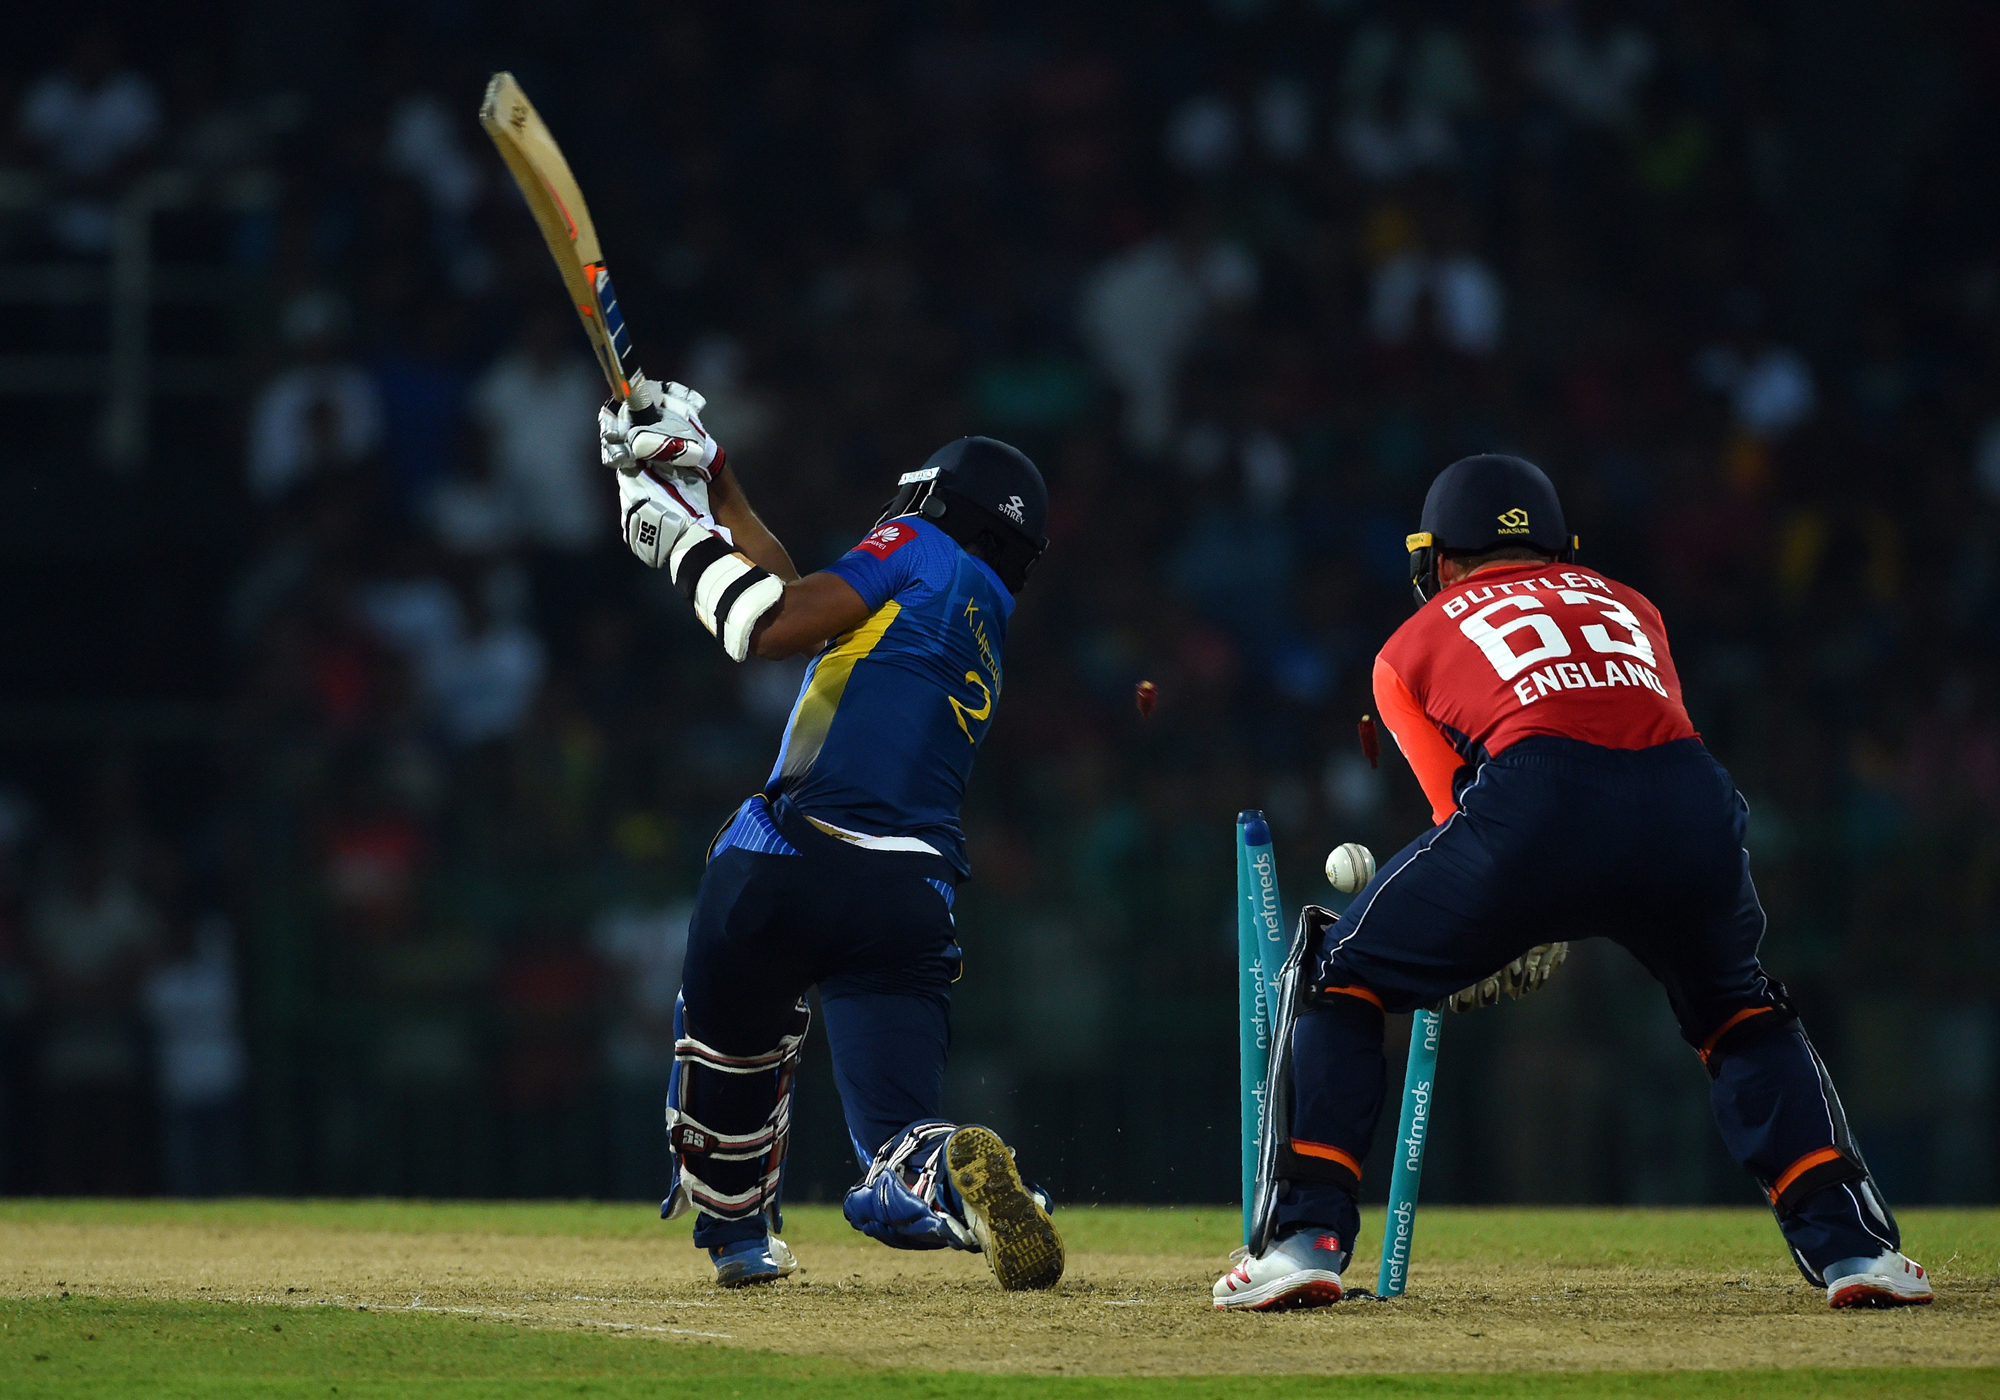 Sri Lankan cricketer Kusal Mendis (L) is dismissed by England's bowler Joe Denly (not pictured) as England's wicket keeper Jos Buttler looks on (R) during the Twenty20 International cricket match between Sri Lanka and England at the R. Premadasa Stadium i